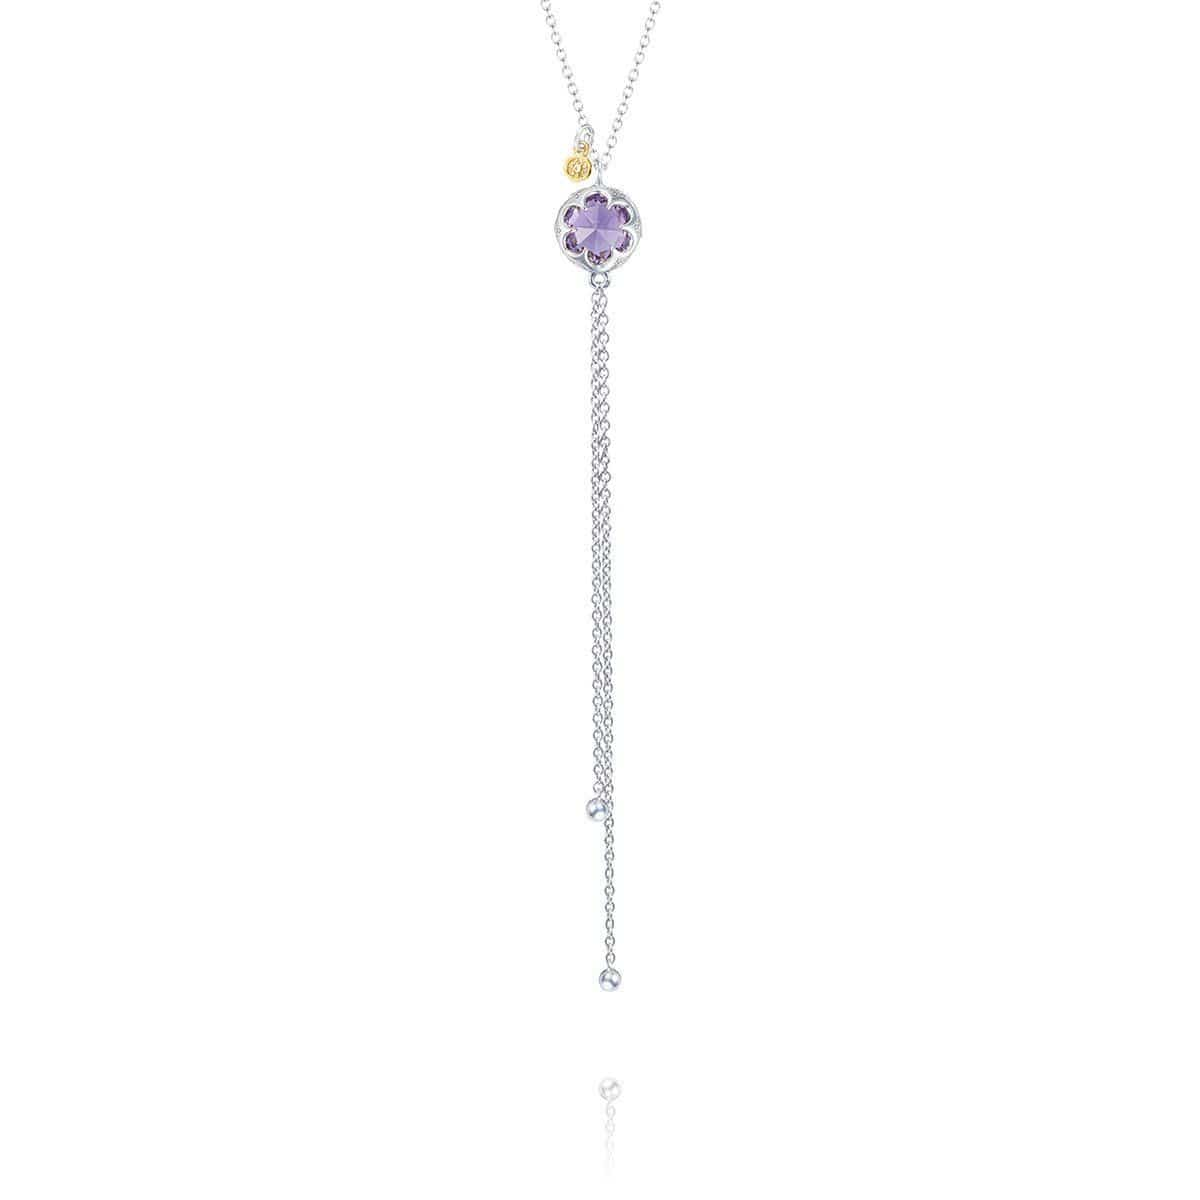 Petite Sterling Silver Lariat Necklace with Amethyst - SN20101 - Tacori